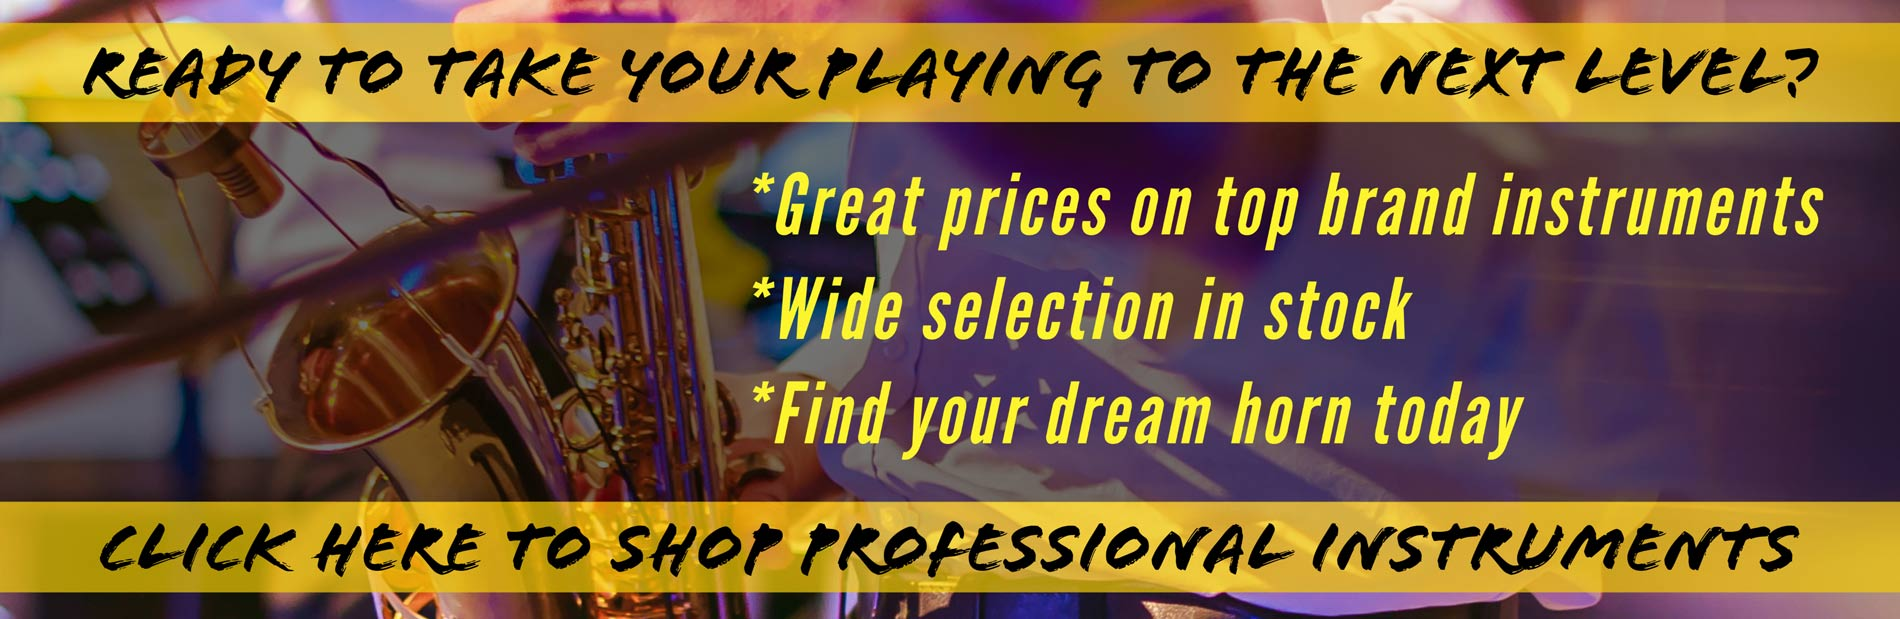 Professional Instrument Sales